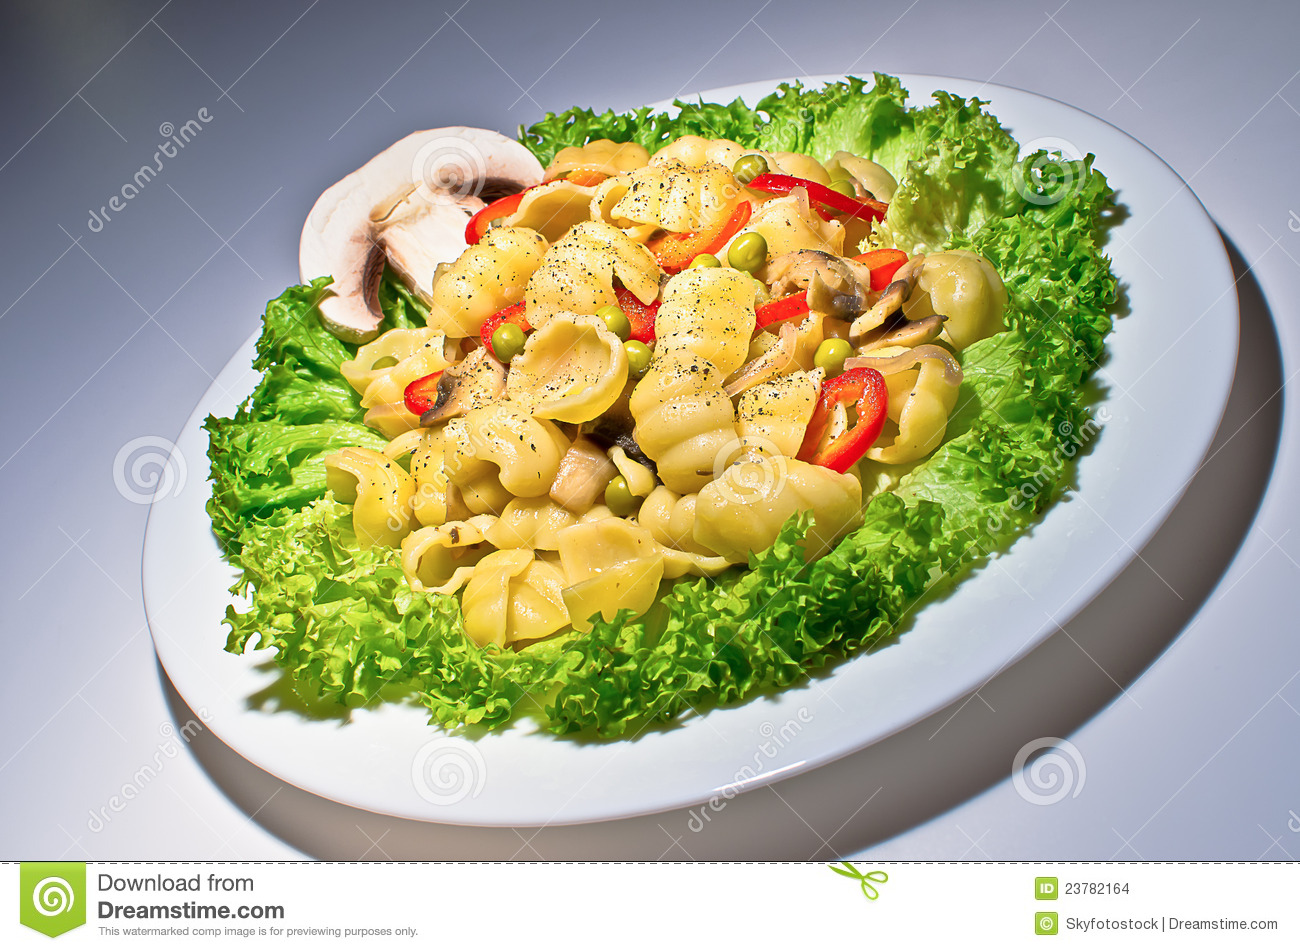 Pasta With Mushrooms Stock Images - Image: 23782164